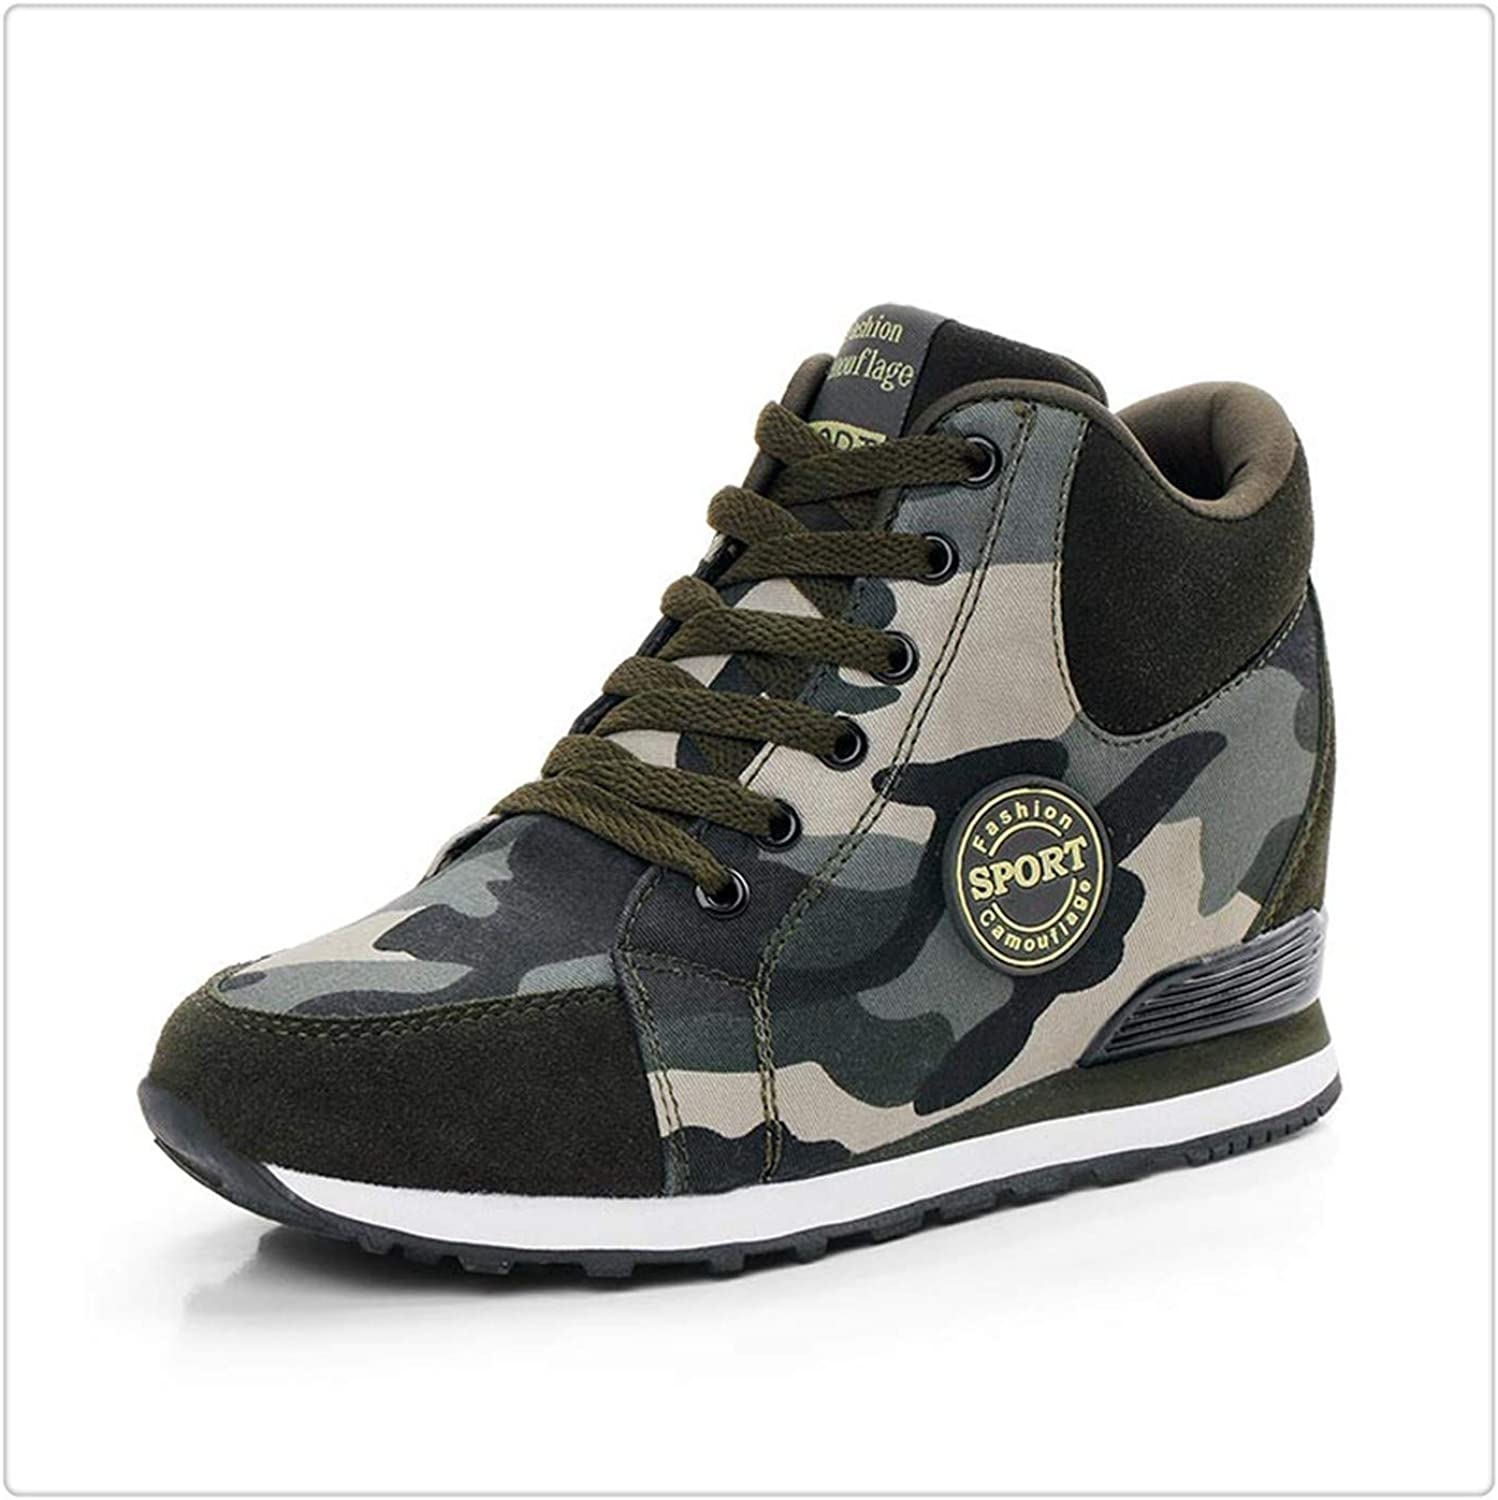 ANZLOU& Women shoes Increased Camouflage high top Casual Canvas Sneakers Tenis Feminino